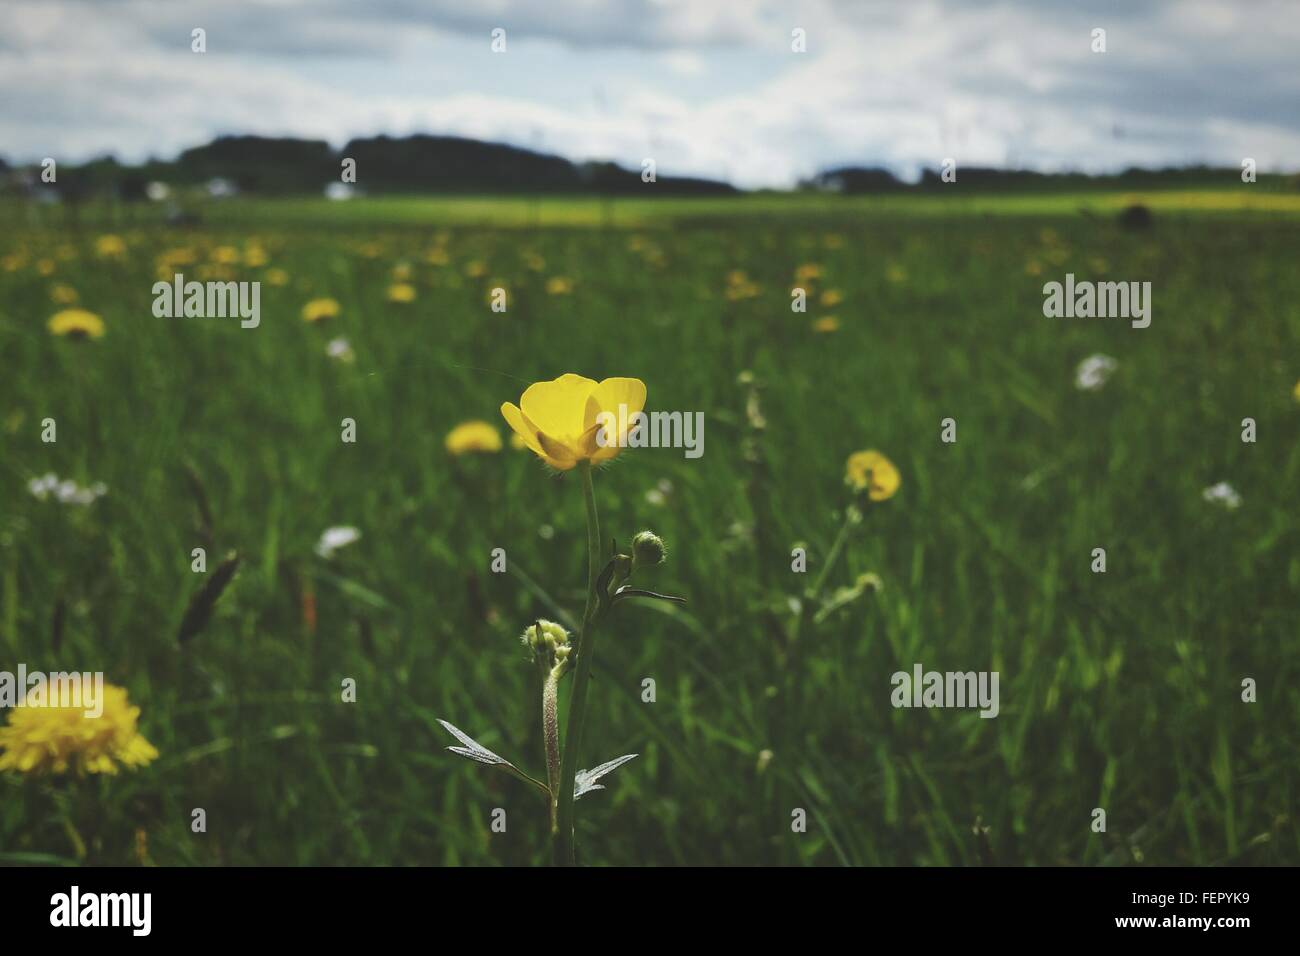 Yellow Flowers Growing In Field Stock Photo